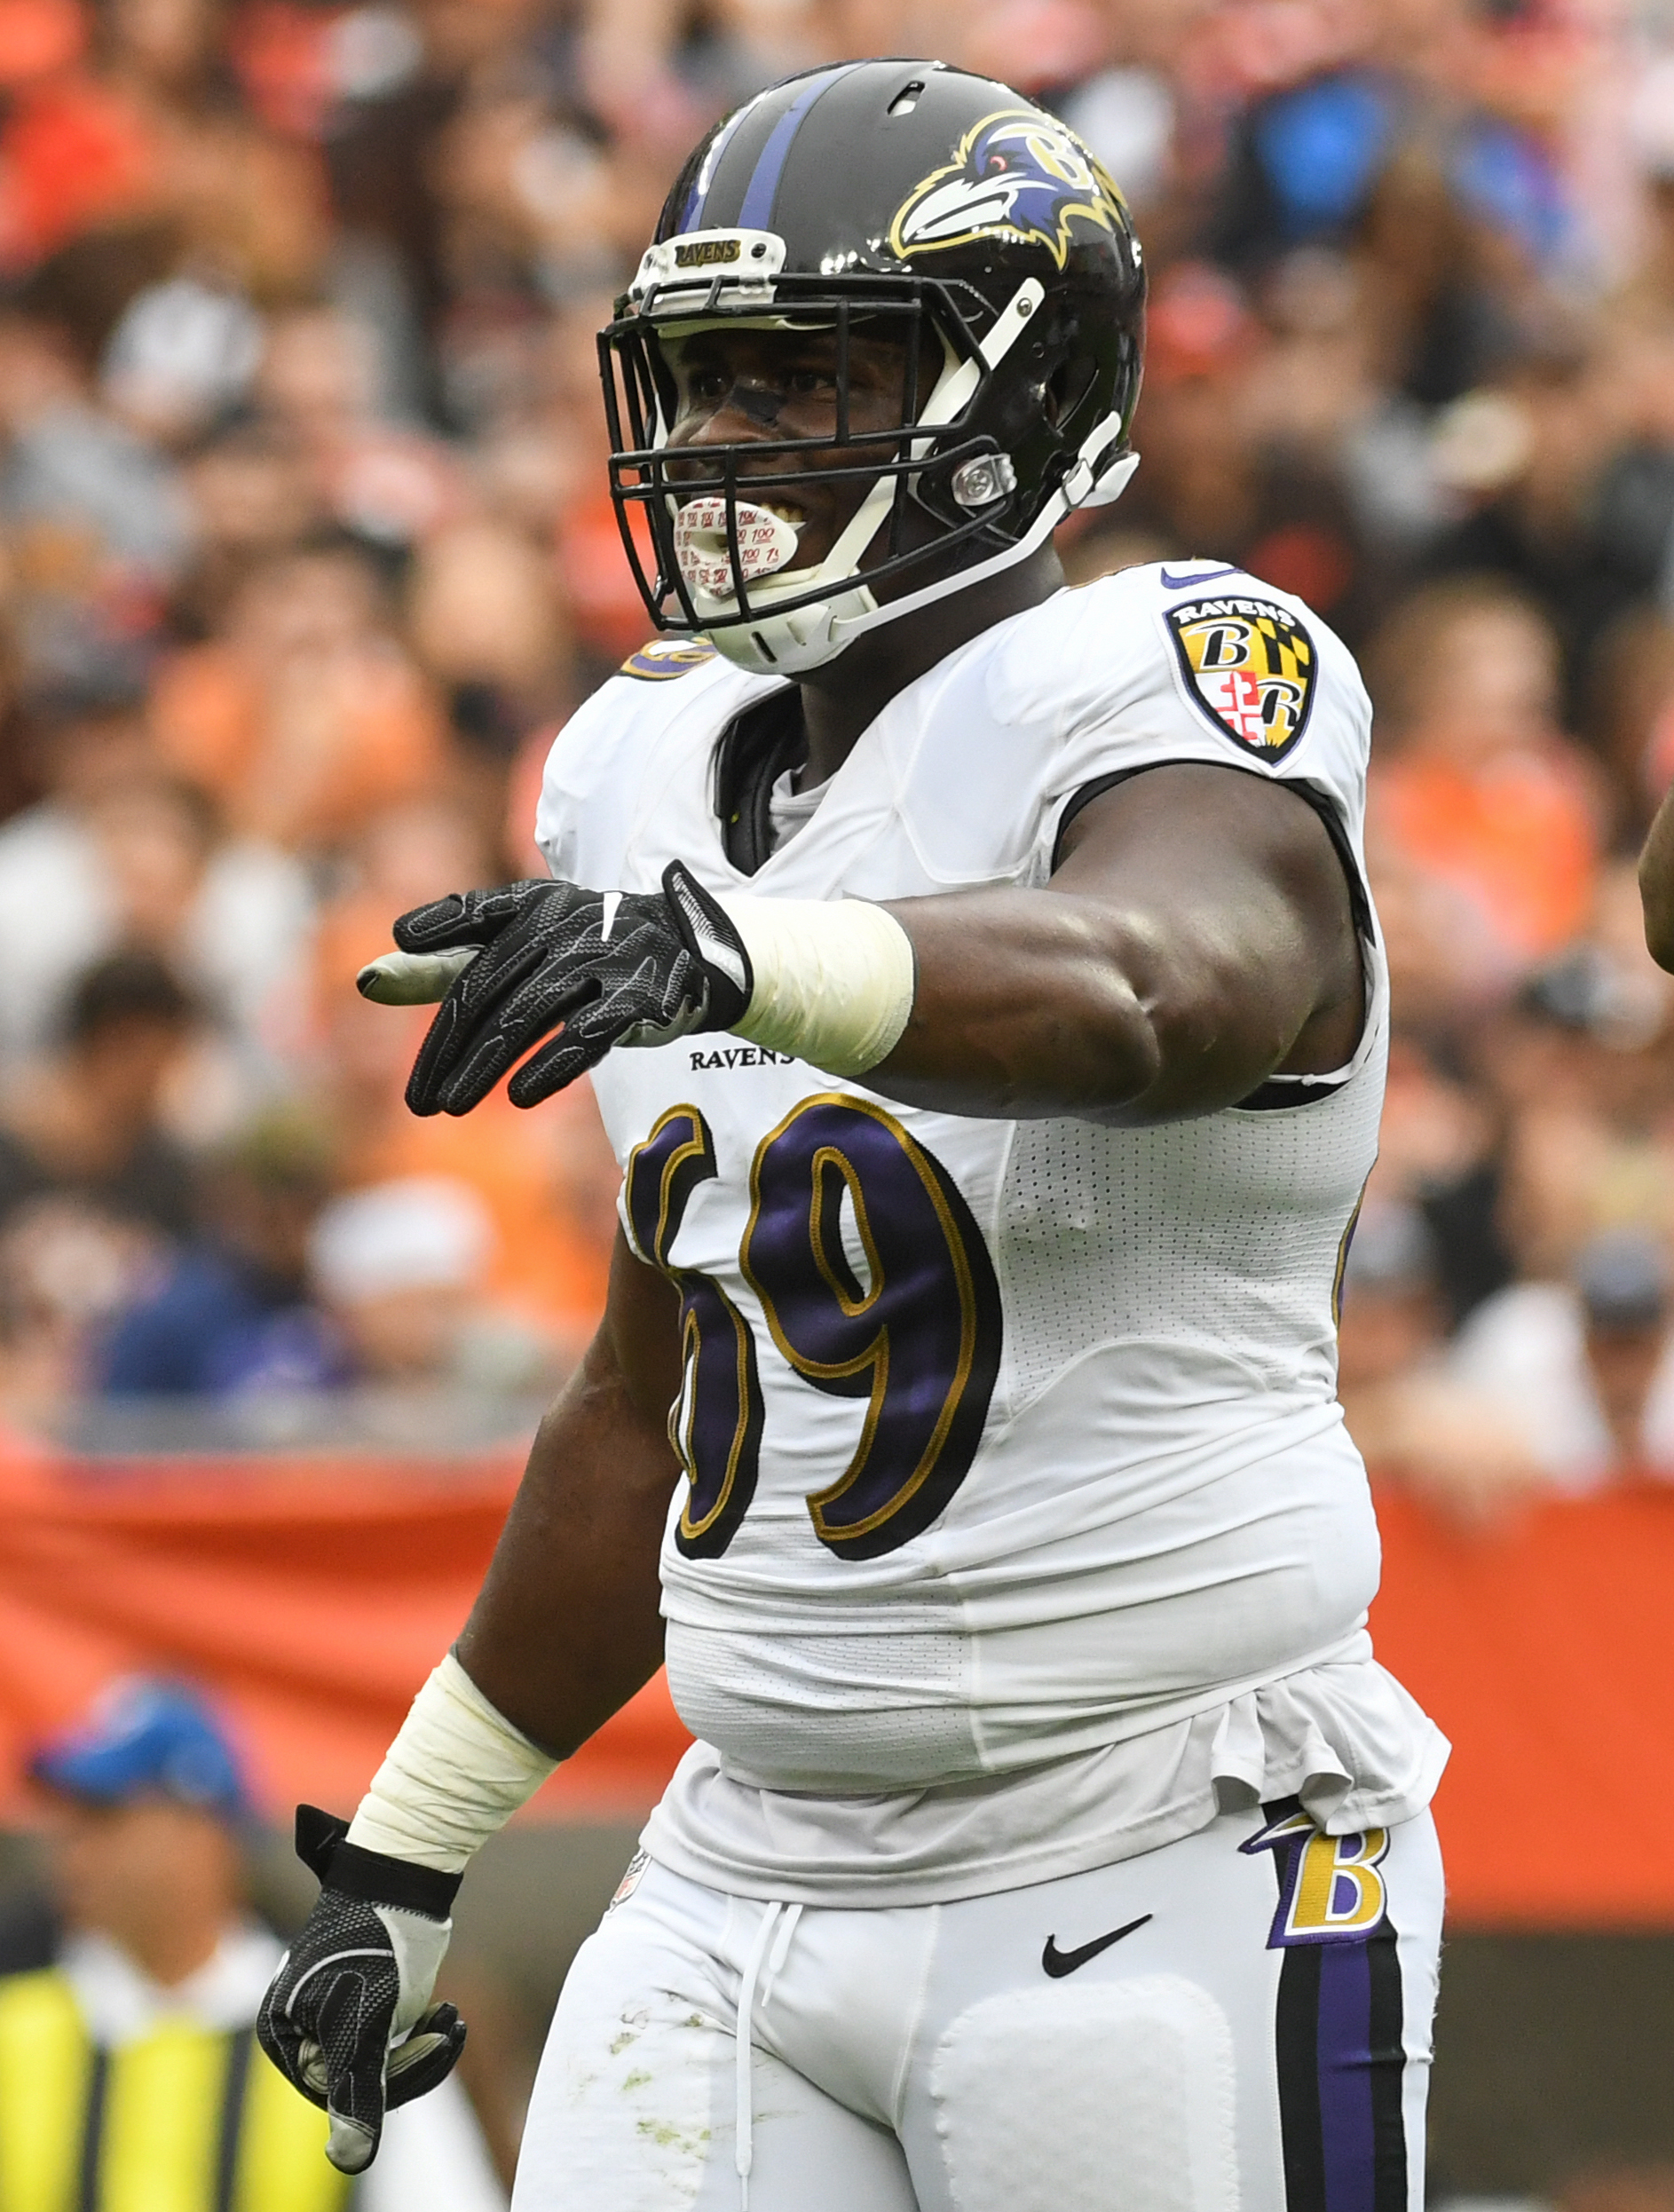 Willie Henry can be the big sack guy the Ravens need. He just HAS to stay healthy